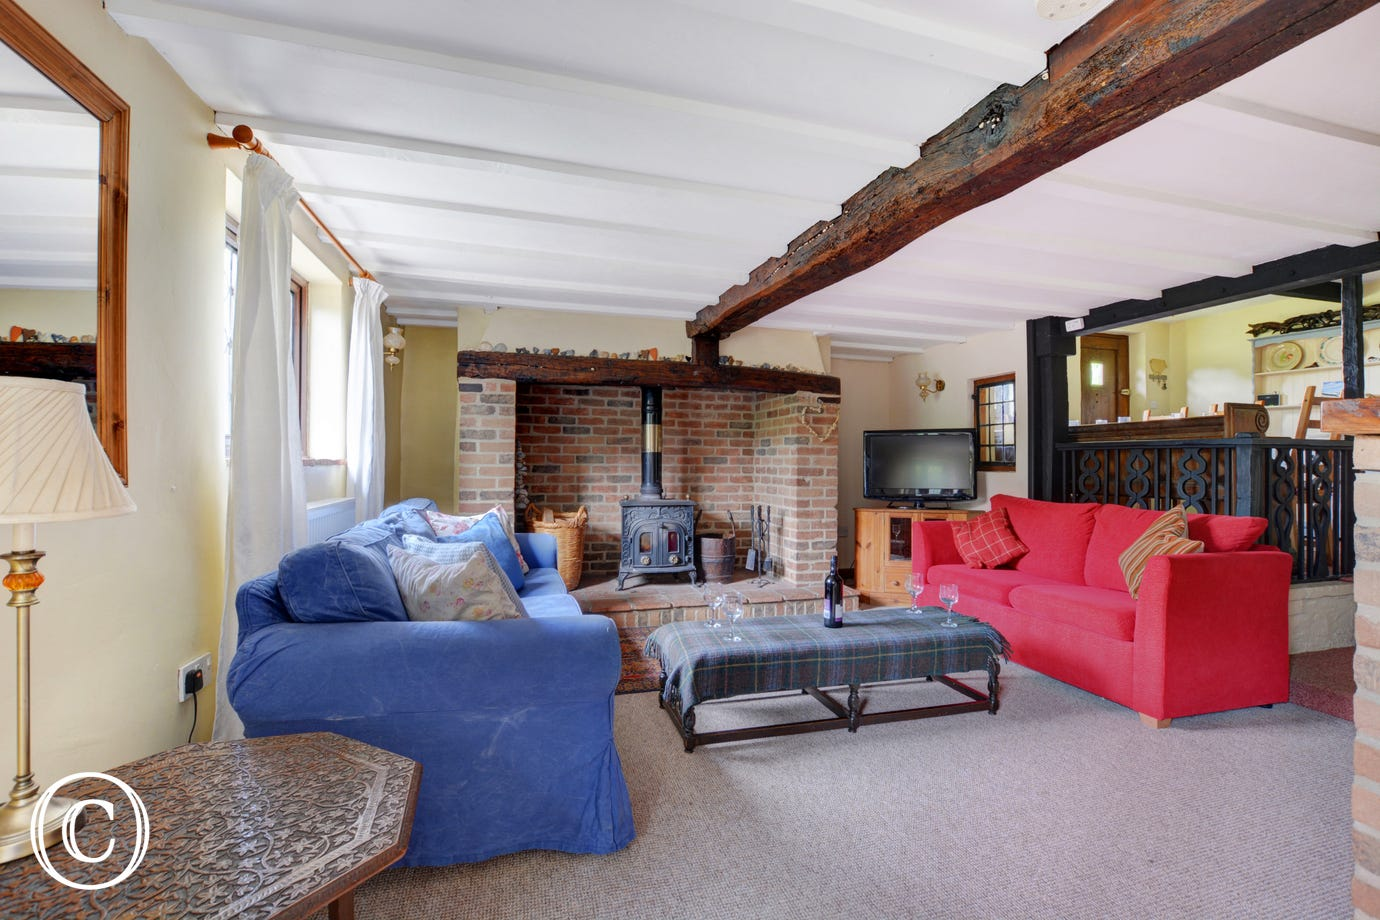 A cosy, traditional sitting room with traditional exposed beams